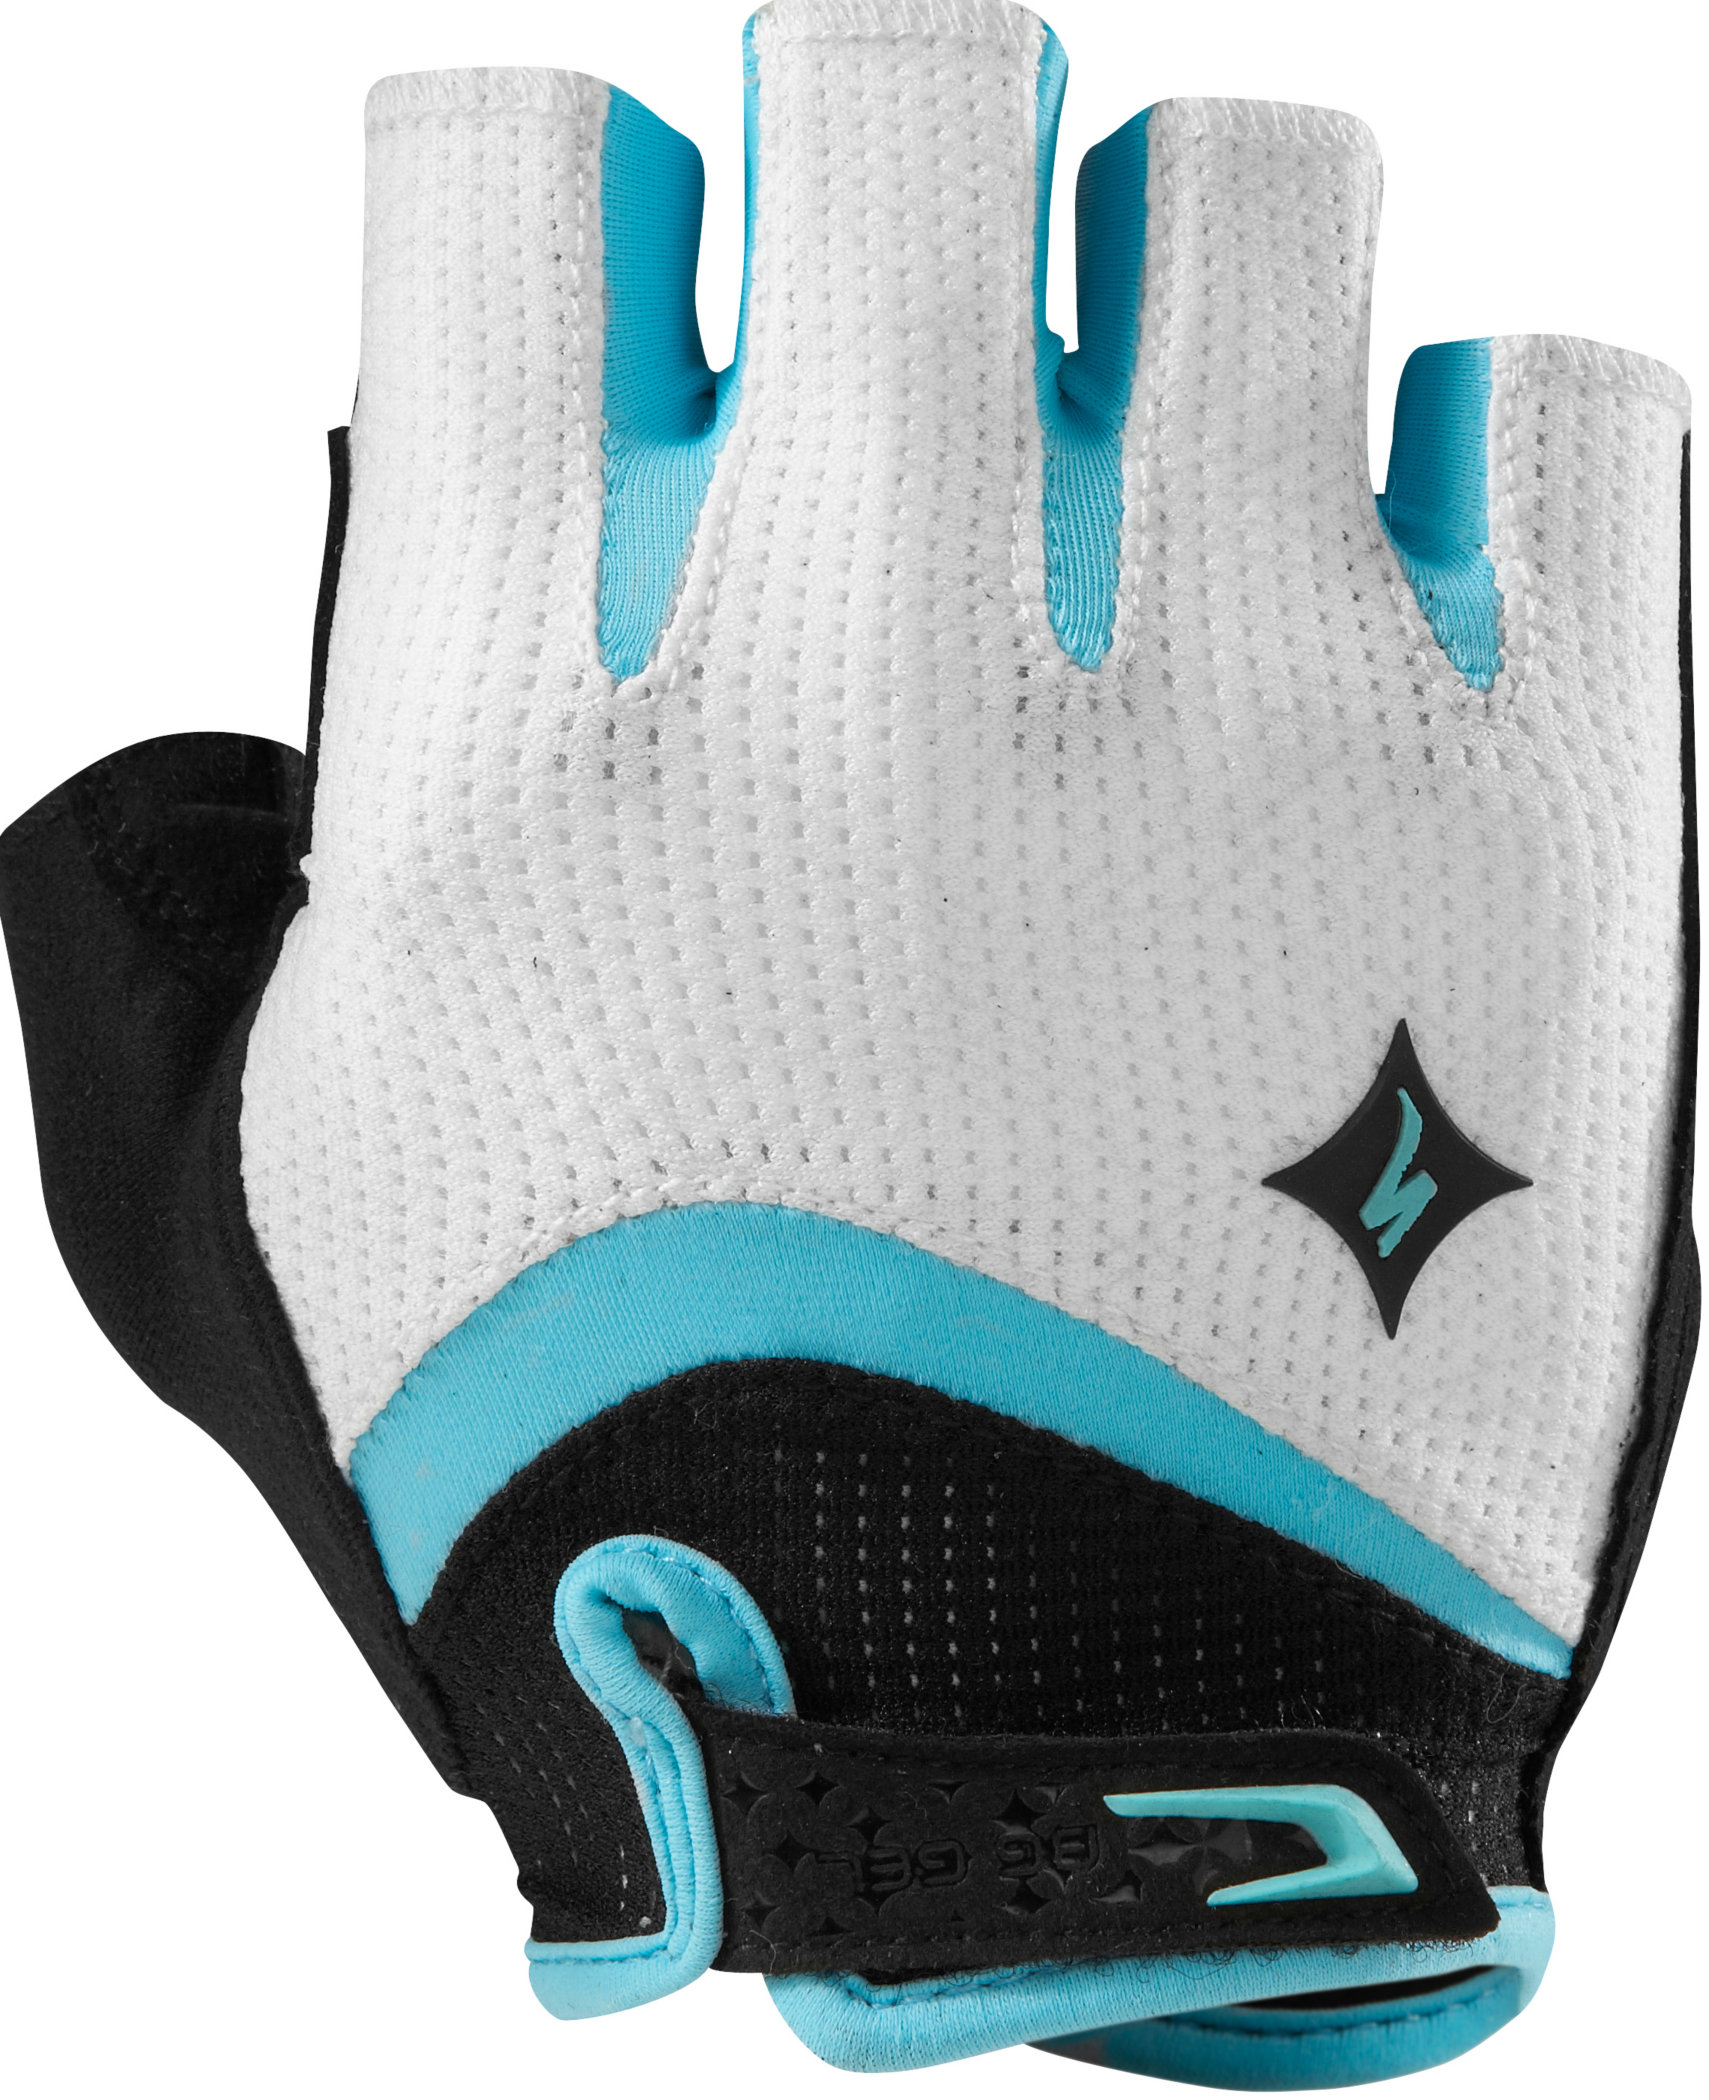 SPECIALIZED BG GEL GLOVE SF WMN WHT/LT TEAL S - Bikedreams & Dustbikes